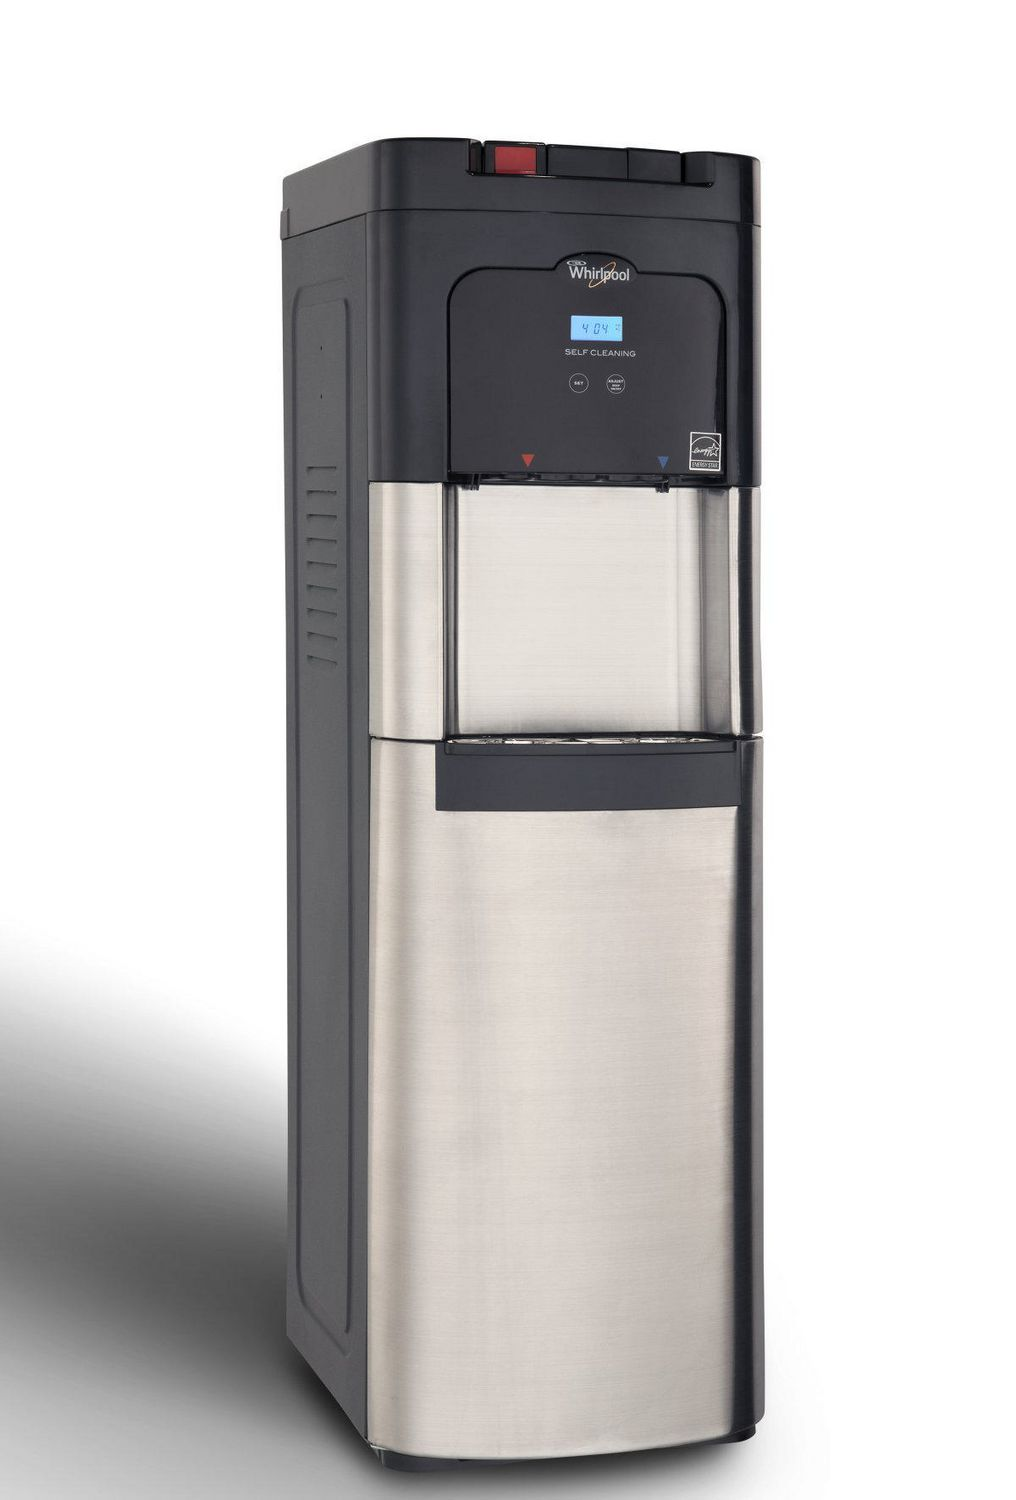 Hot And Cold Water Cooler Dispenser Whirlpool Self Cleaning Bottom Loading Hot And Cold Water Cooler